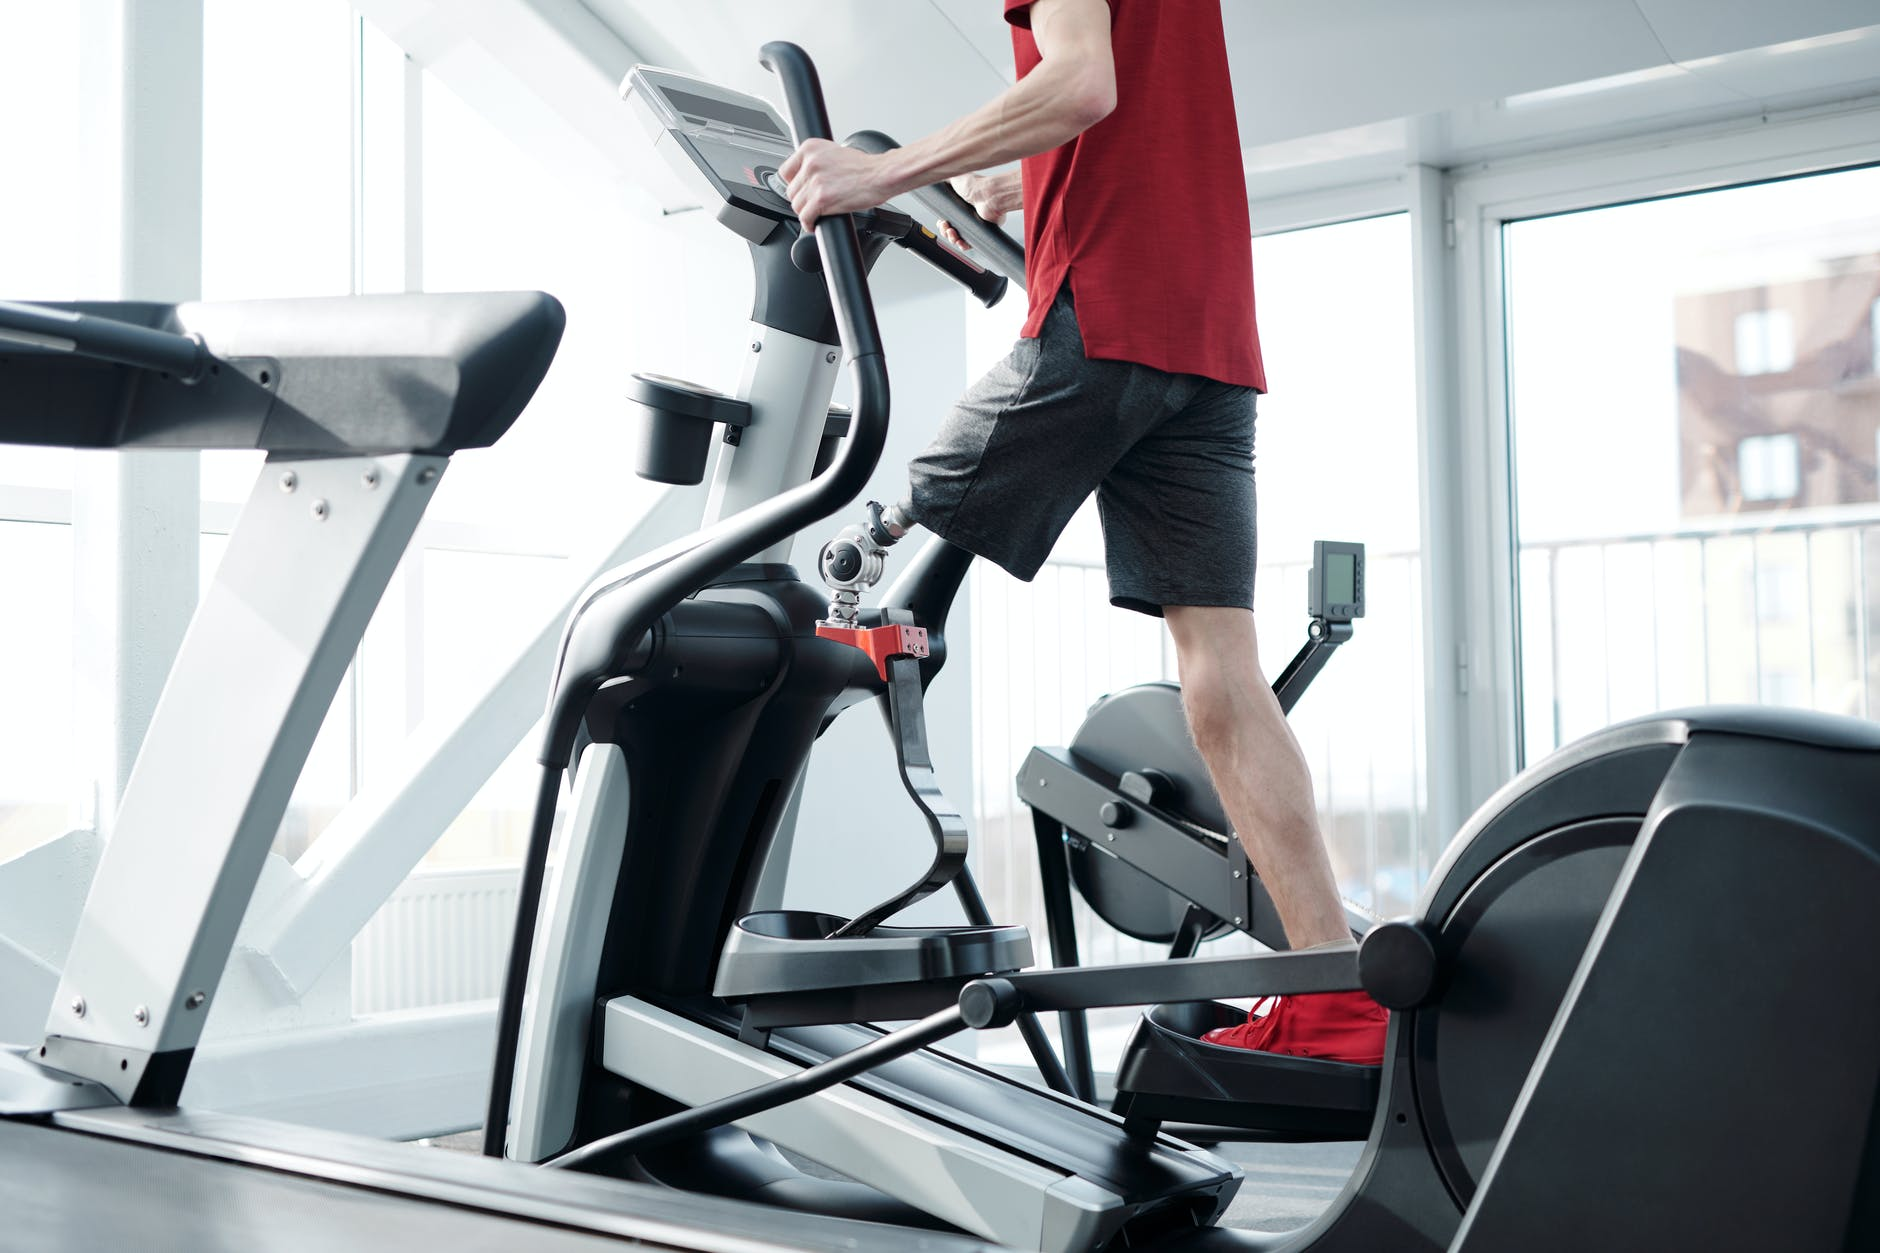 5 Best Elliptical Under $1500